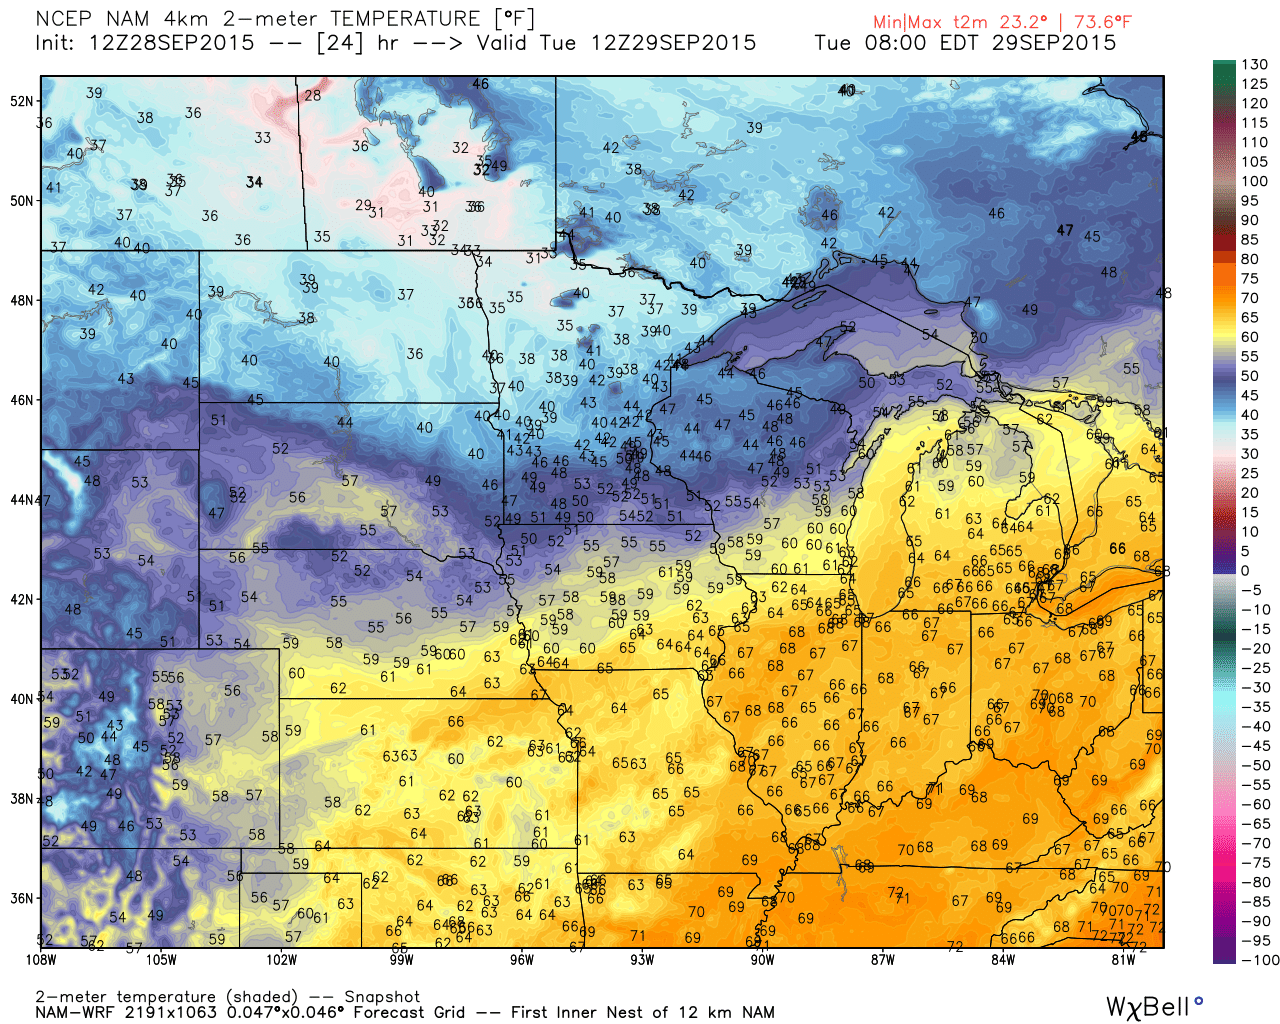 Tuesday AM 7 AM temperature projections